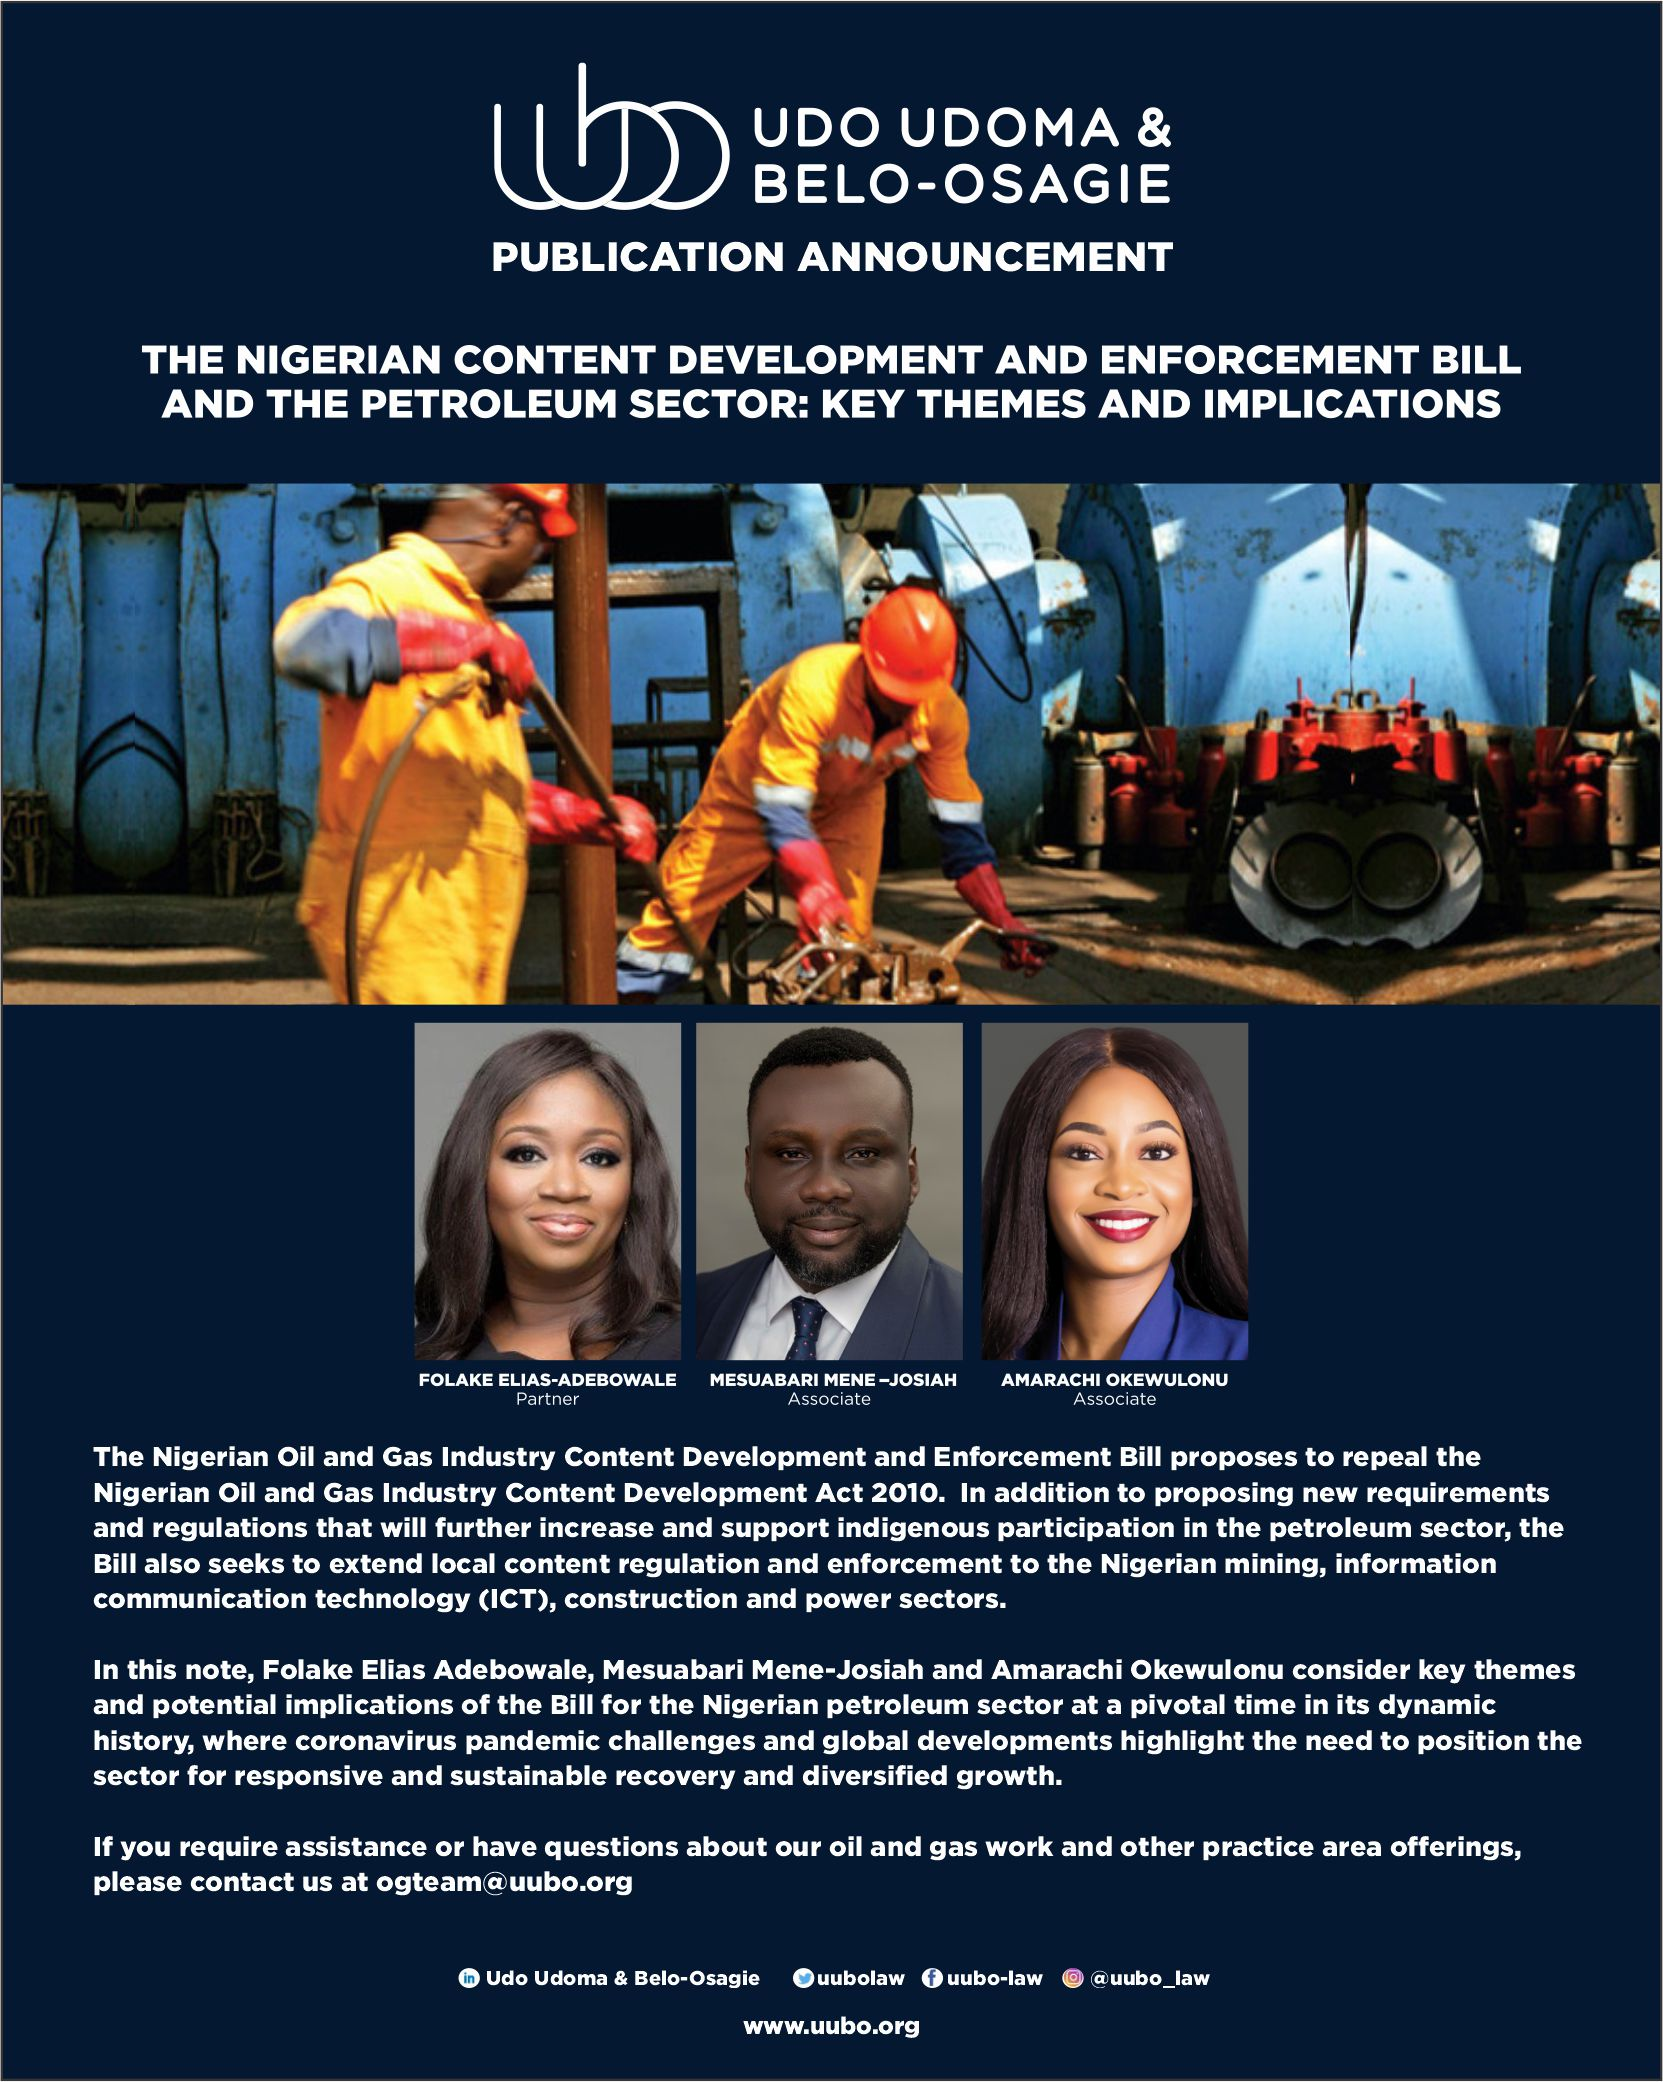 THE NIGERIAN CONTENT DEVELOPMENT AND ENFORCEMENT BILL AND THE PETROLEUM SECTOR: KEY THEMES AND IMPLICATIONS